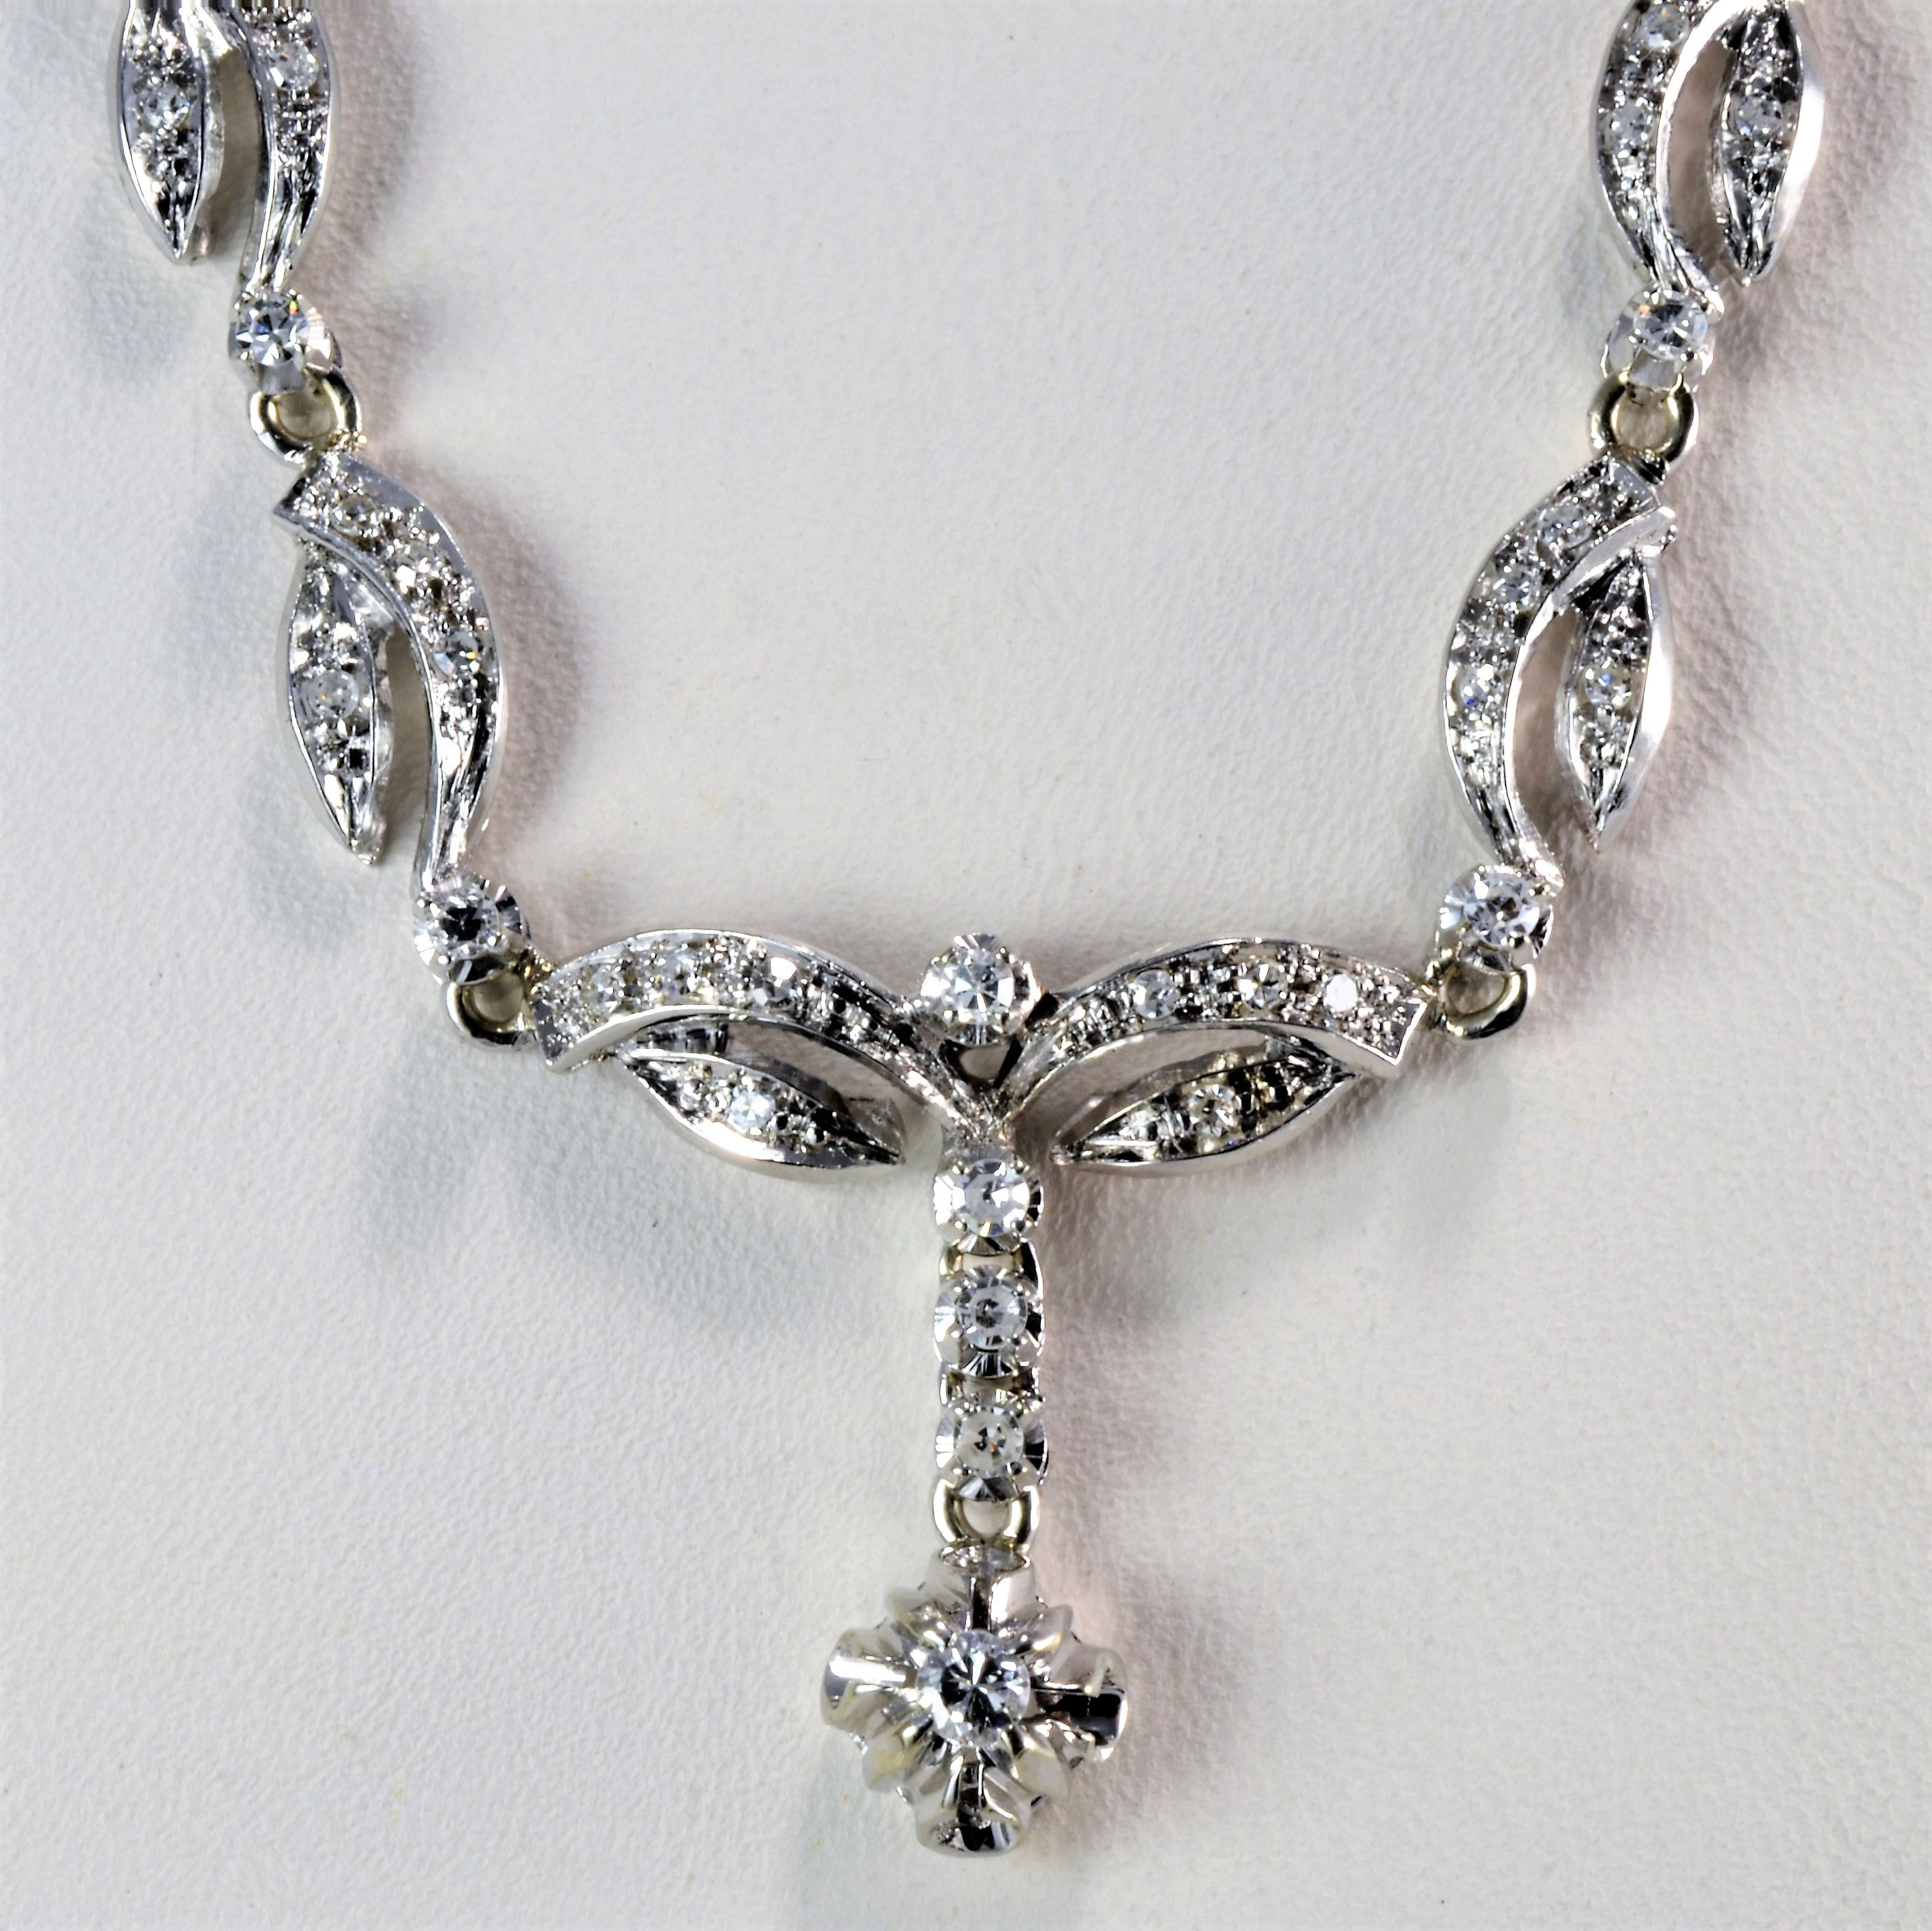 Filigree Design Diamond Necklace | 0.33 ctw, 17''|